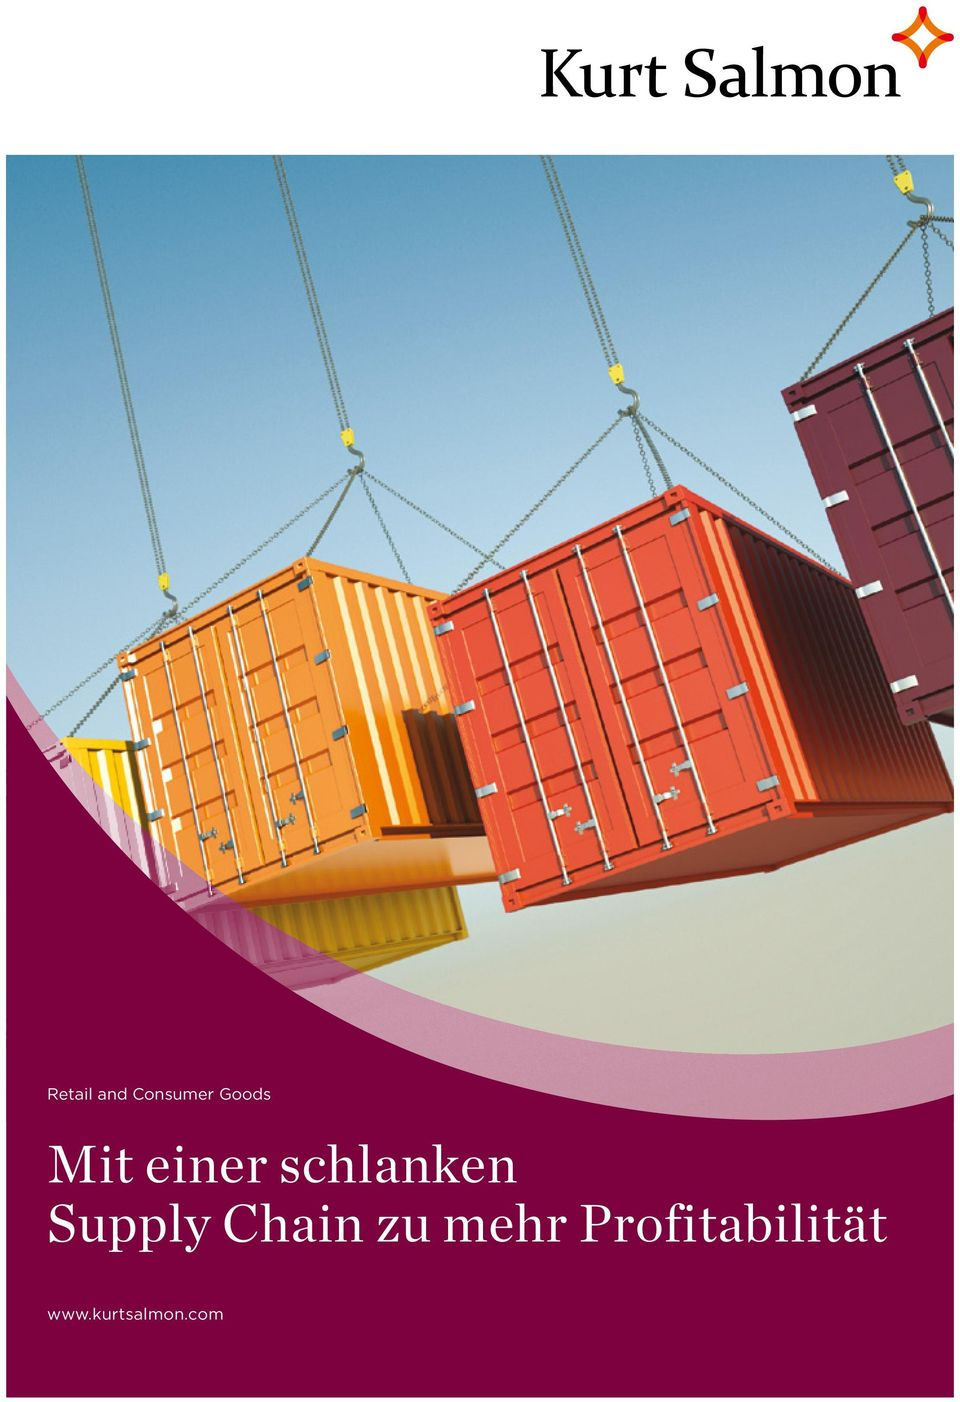 schlanken Supply Chain